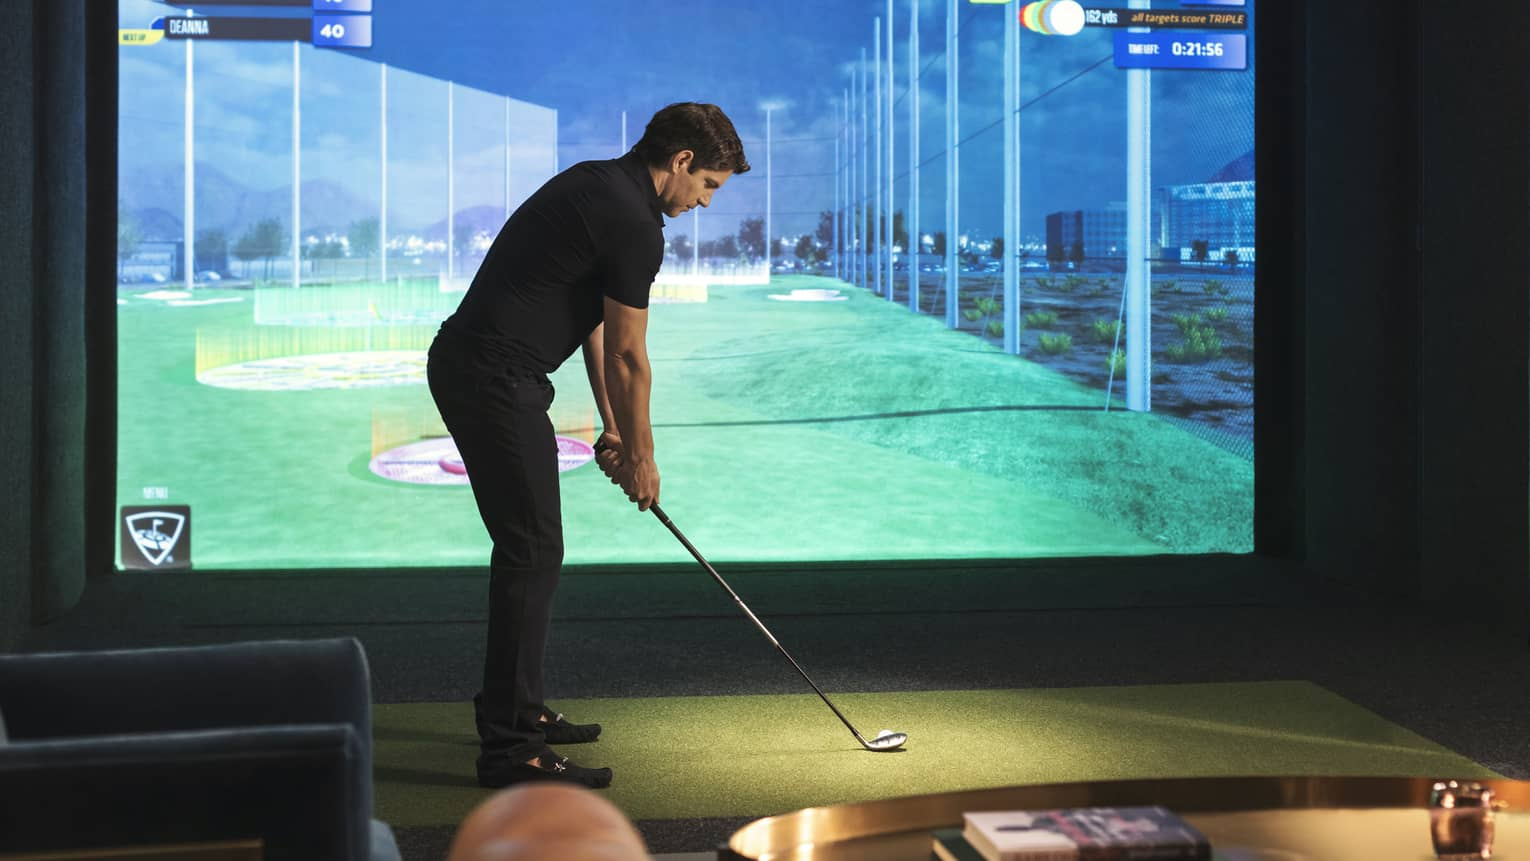 Man with golf club stands in front of screen showing Virtual Fairway